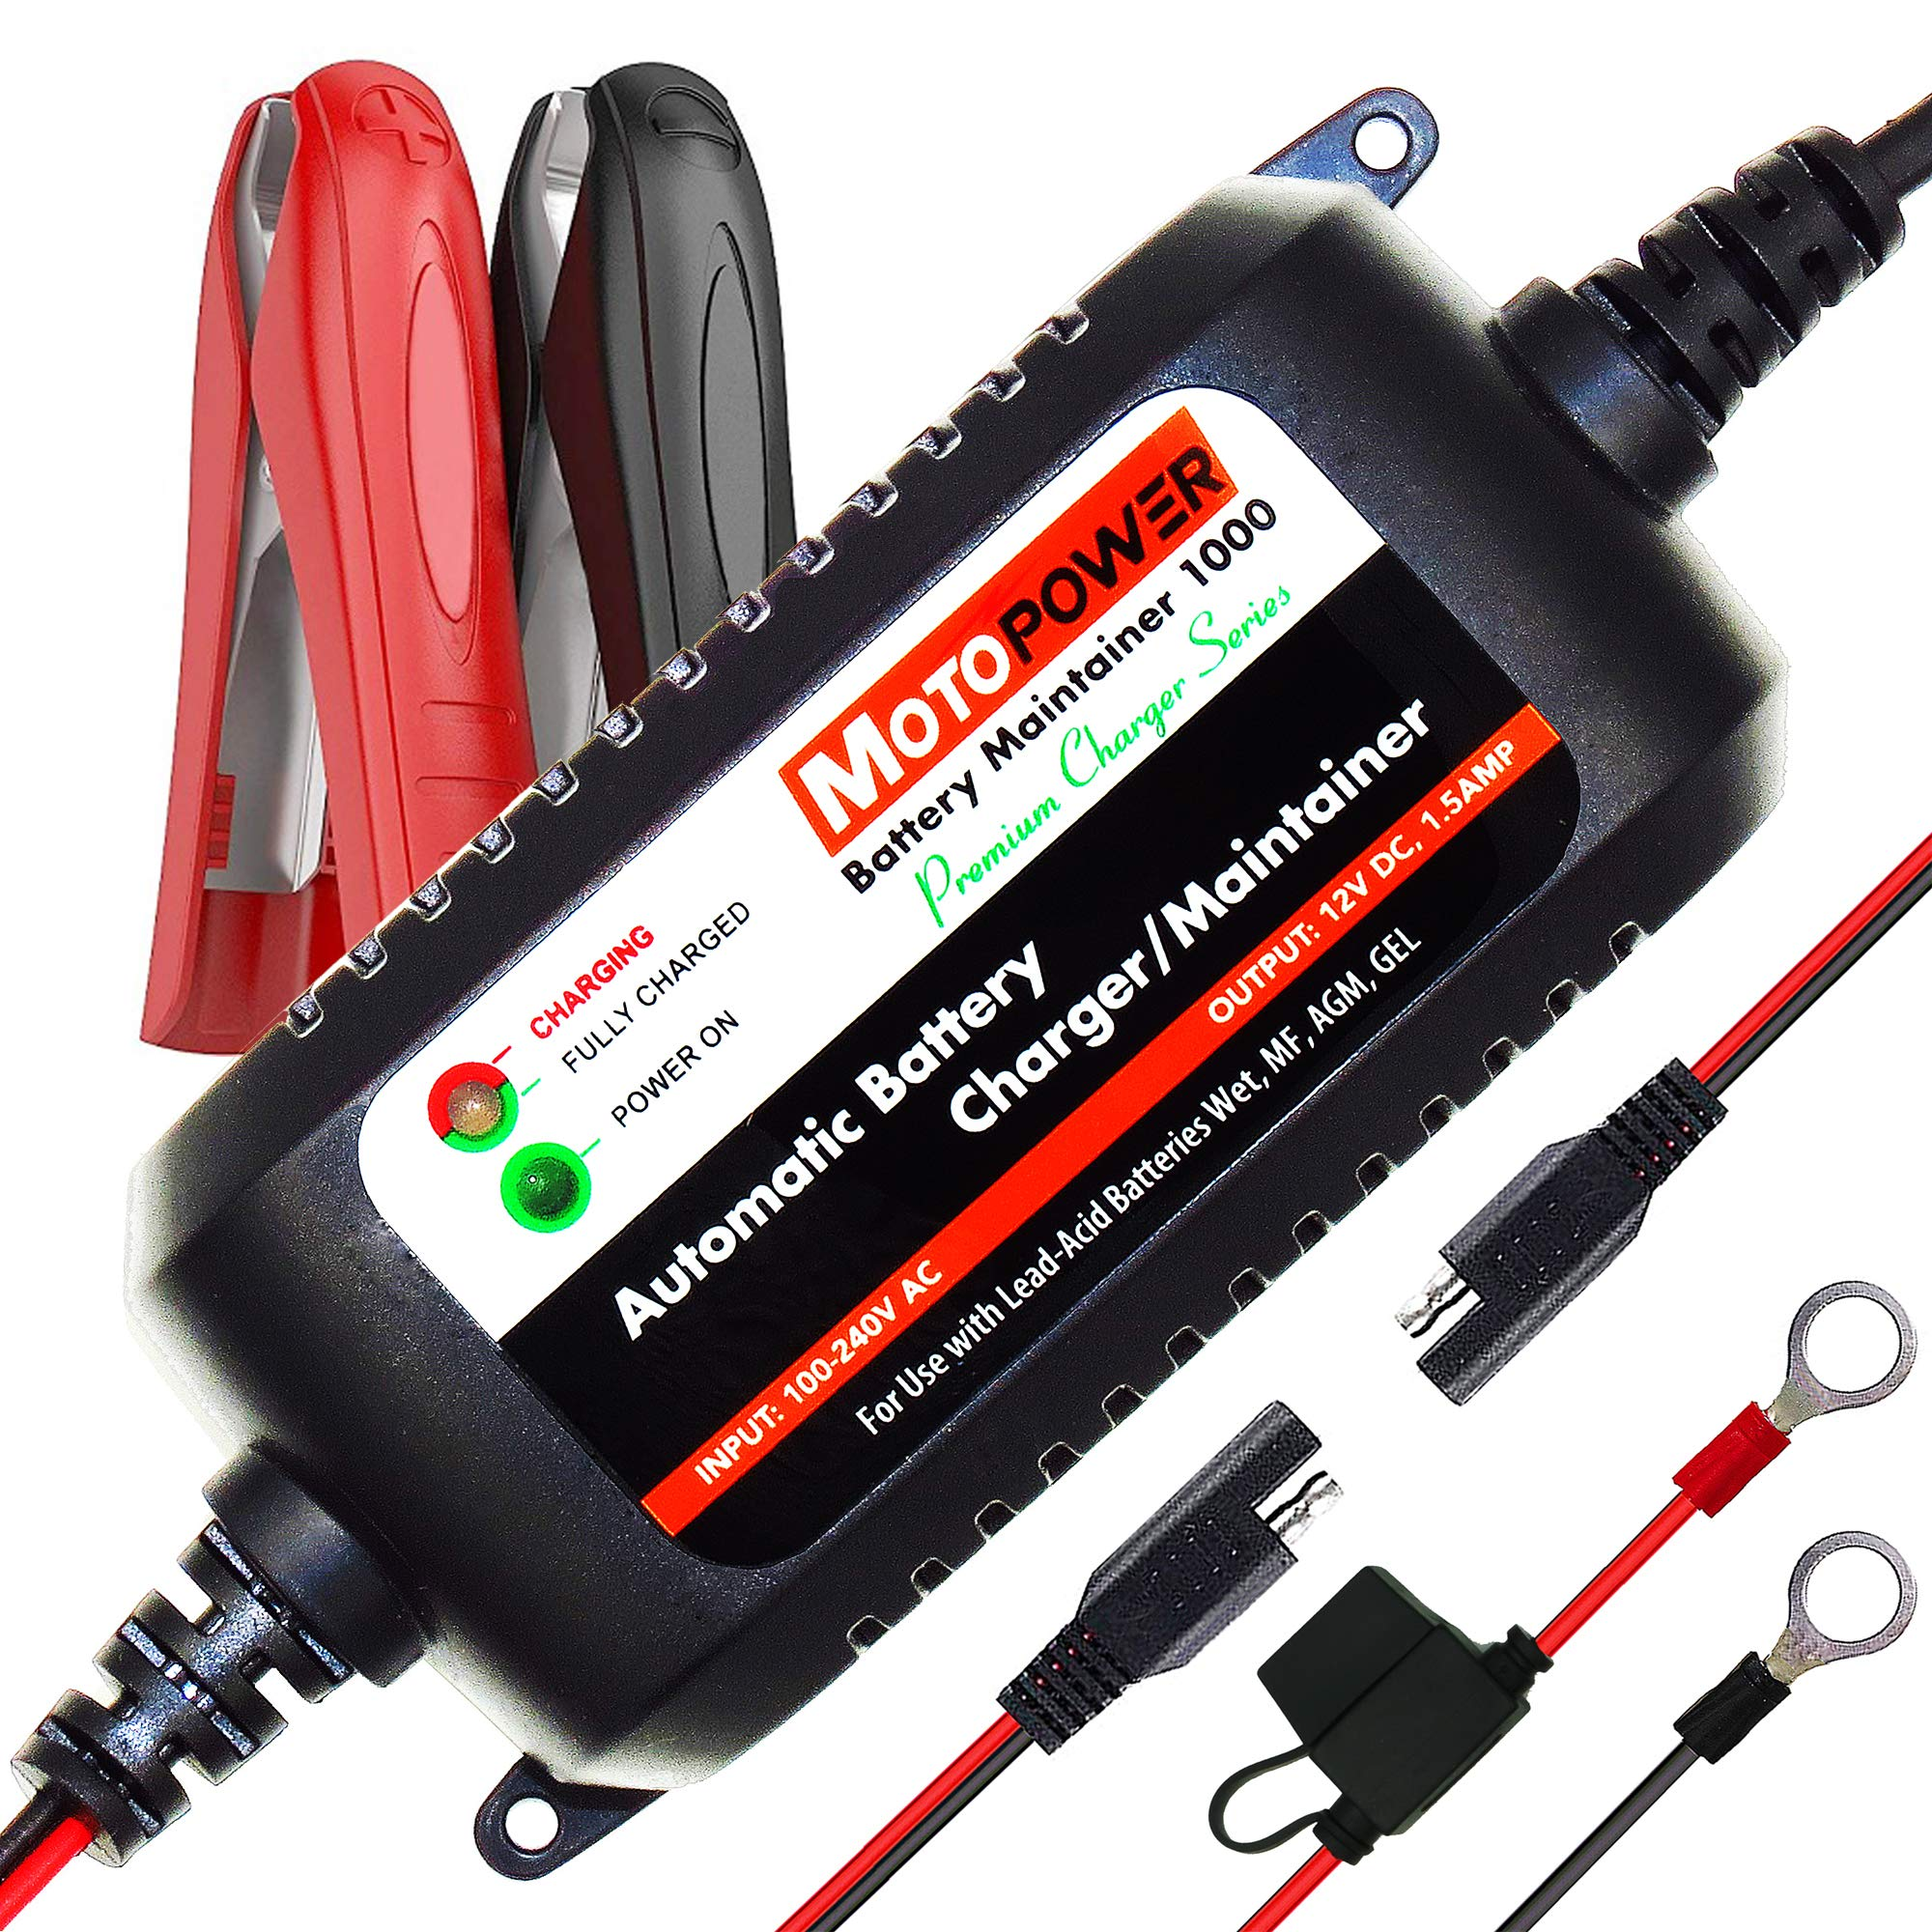 Toys Power Tool Lawn /& Garden Battery Systems Boat /& Marine Motorcycle TOPAC 12 Volt 1.25A Automatic Car Battery Charger and Maintainer for Automotive RV